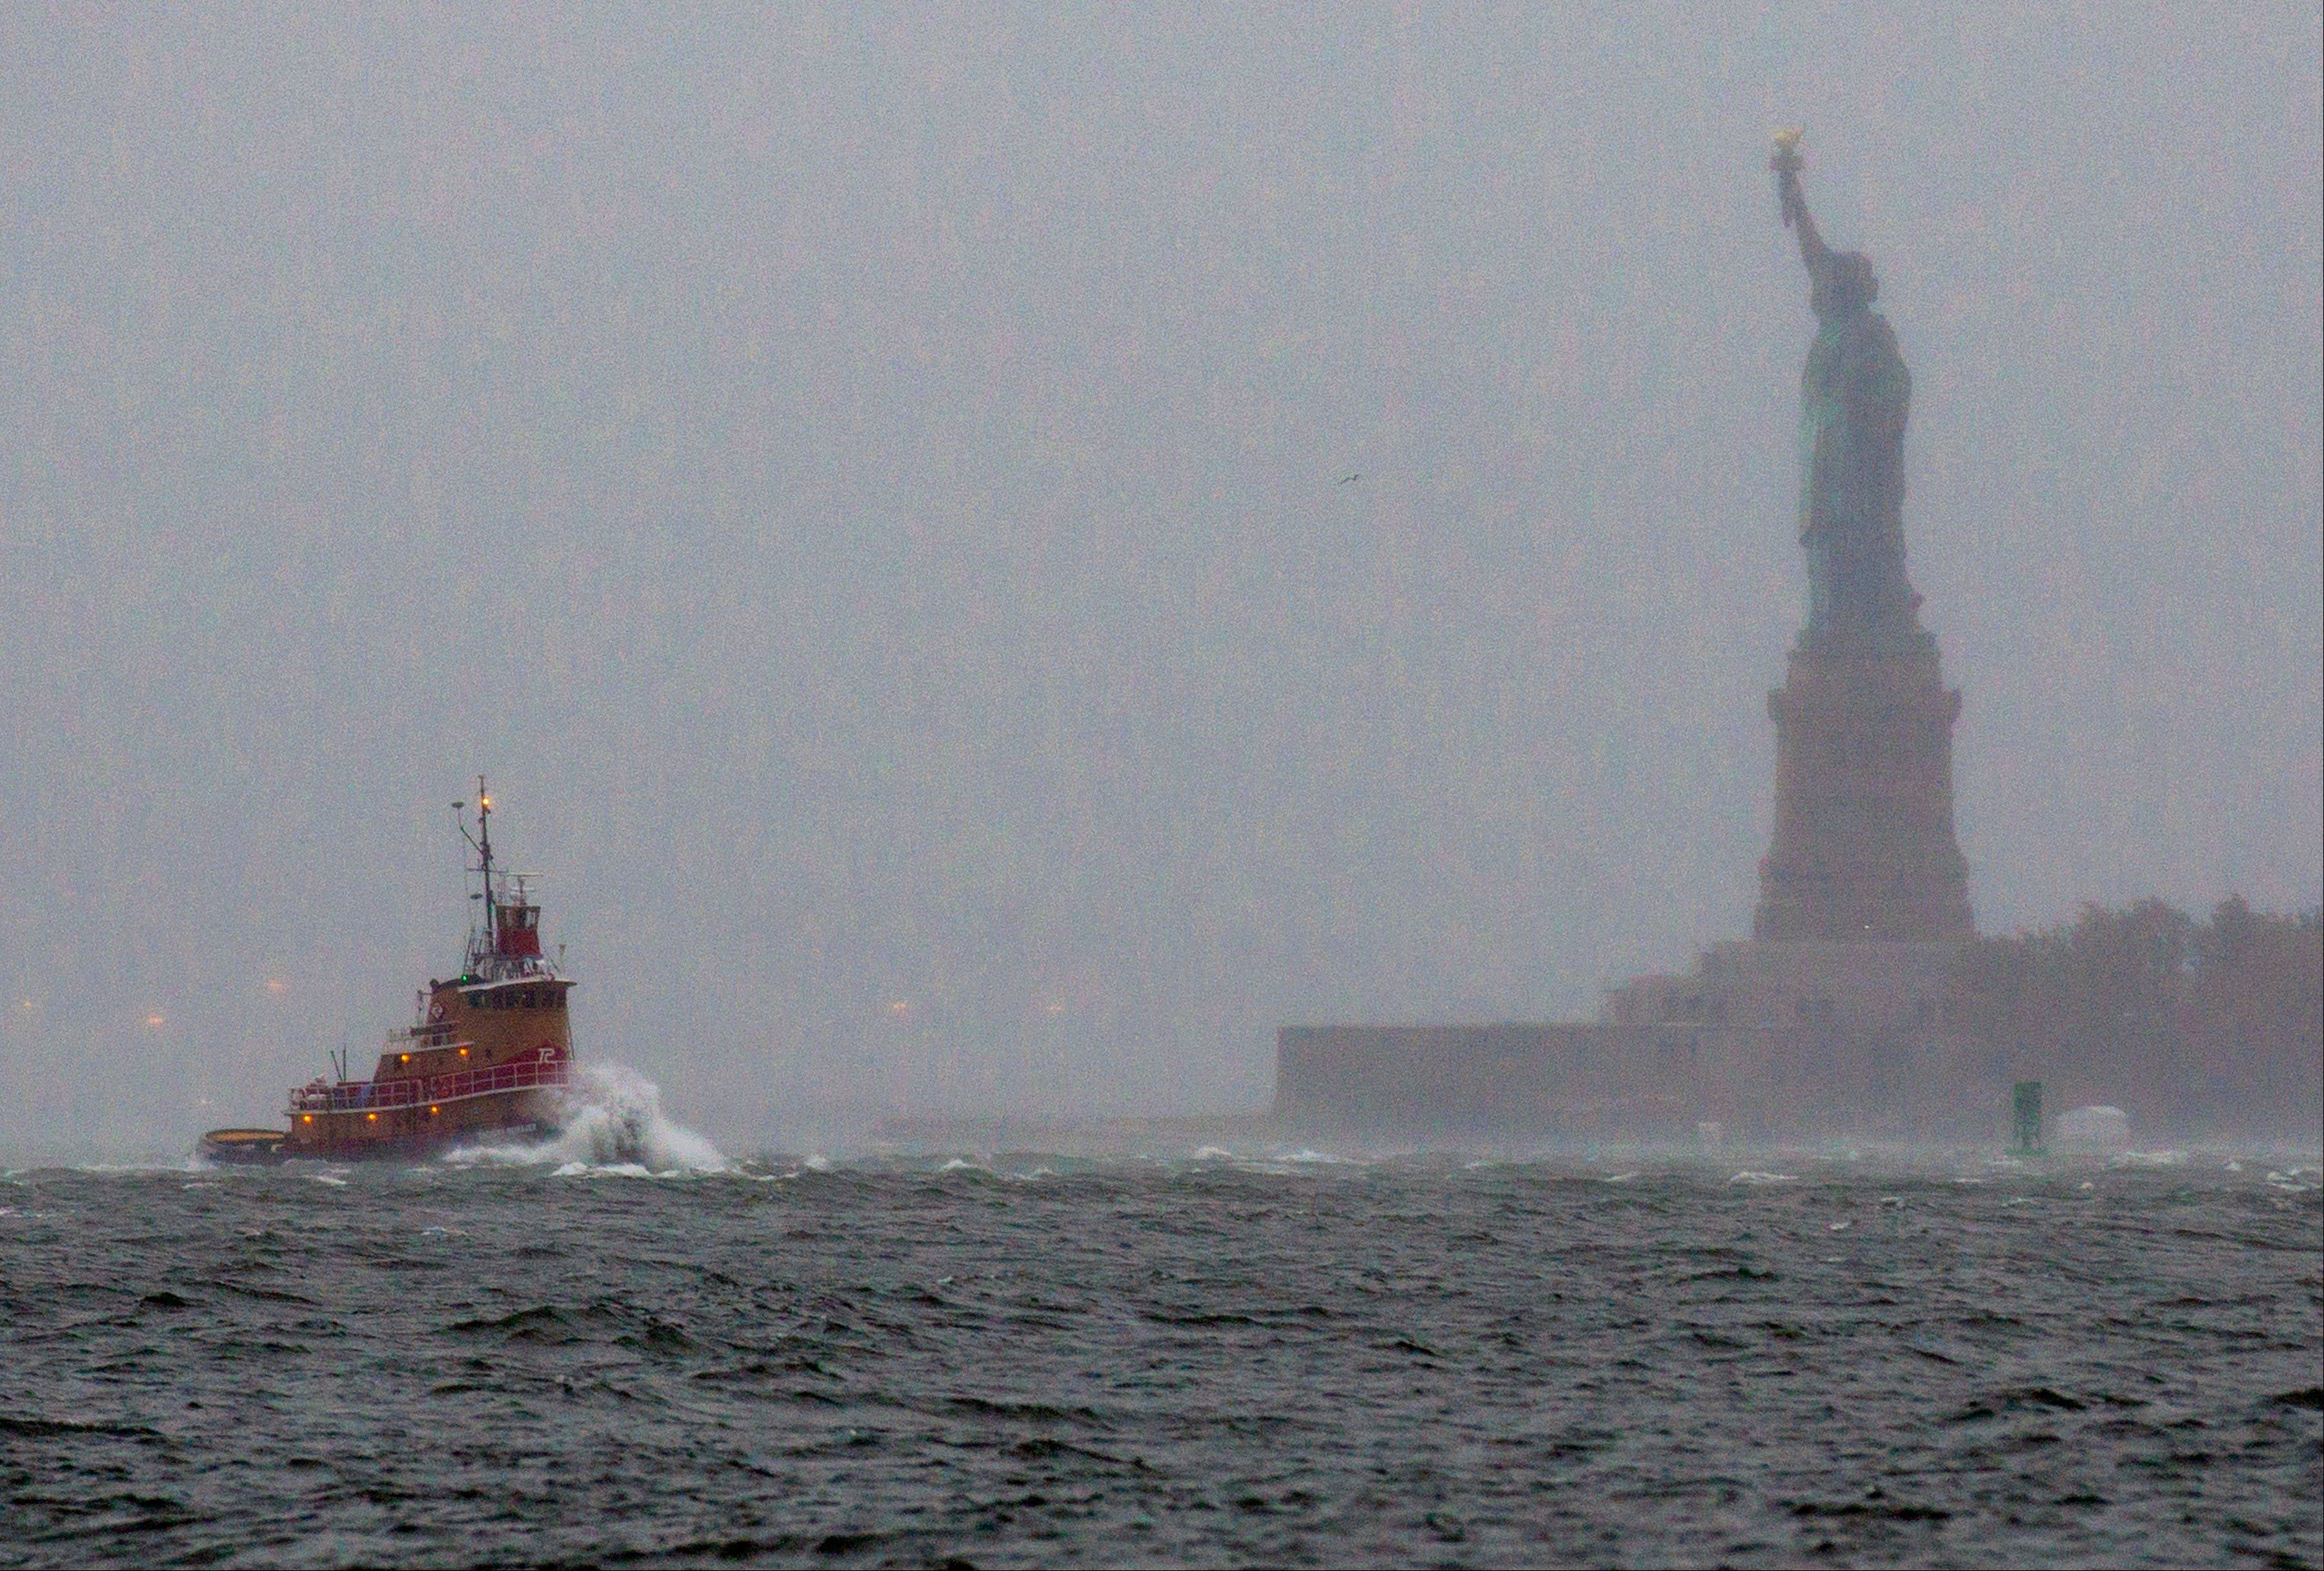 Waves crash over the bow of a tug boat as it passes near the Statue of Liberty in New York Monday as rough water as the result of Hurricane Sandy churned the waters of New York Harbor.